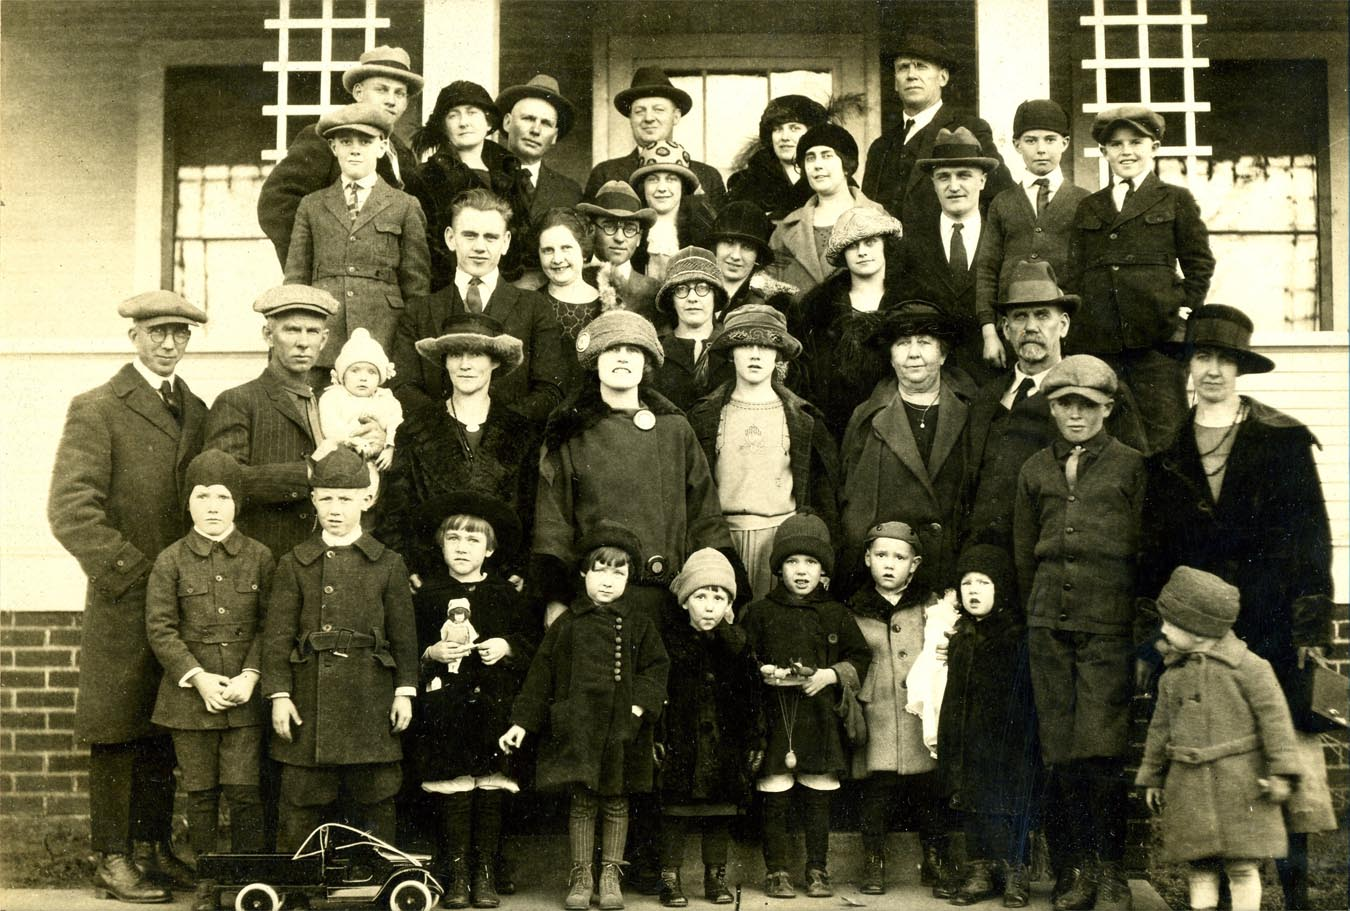 Lyon extended family (March 1927)